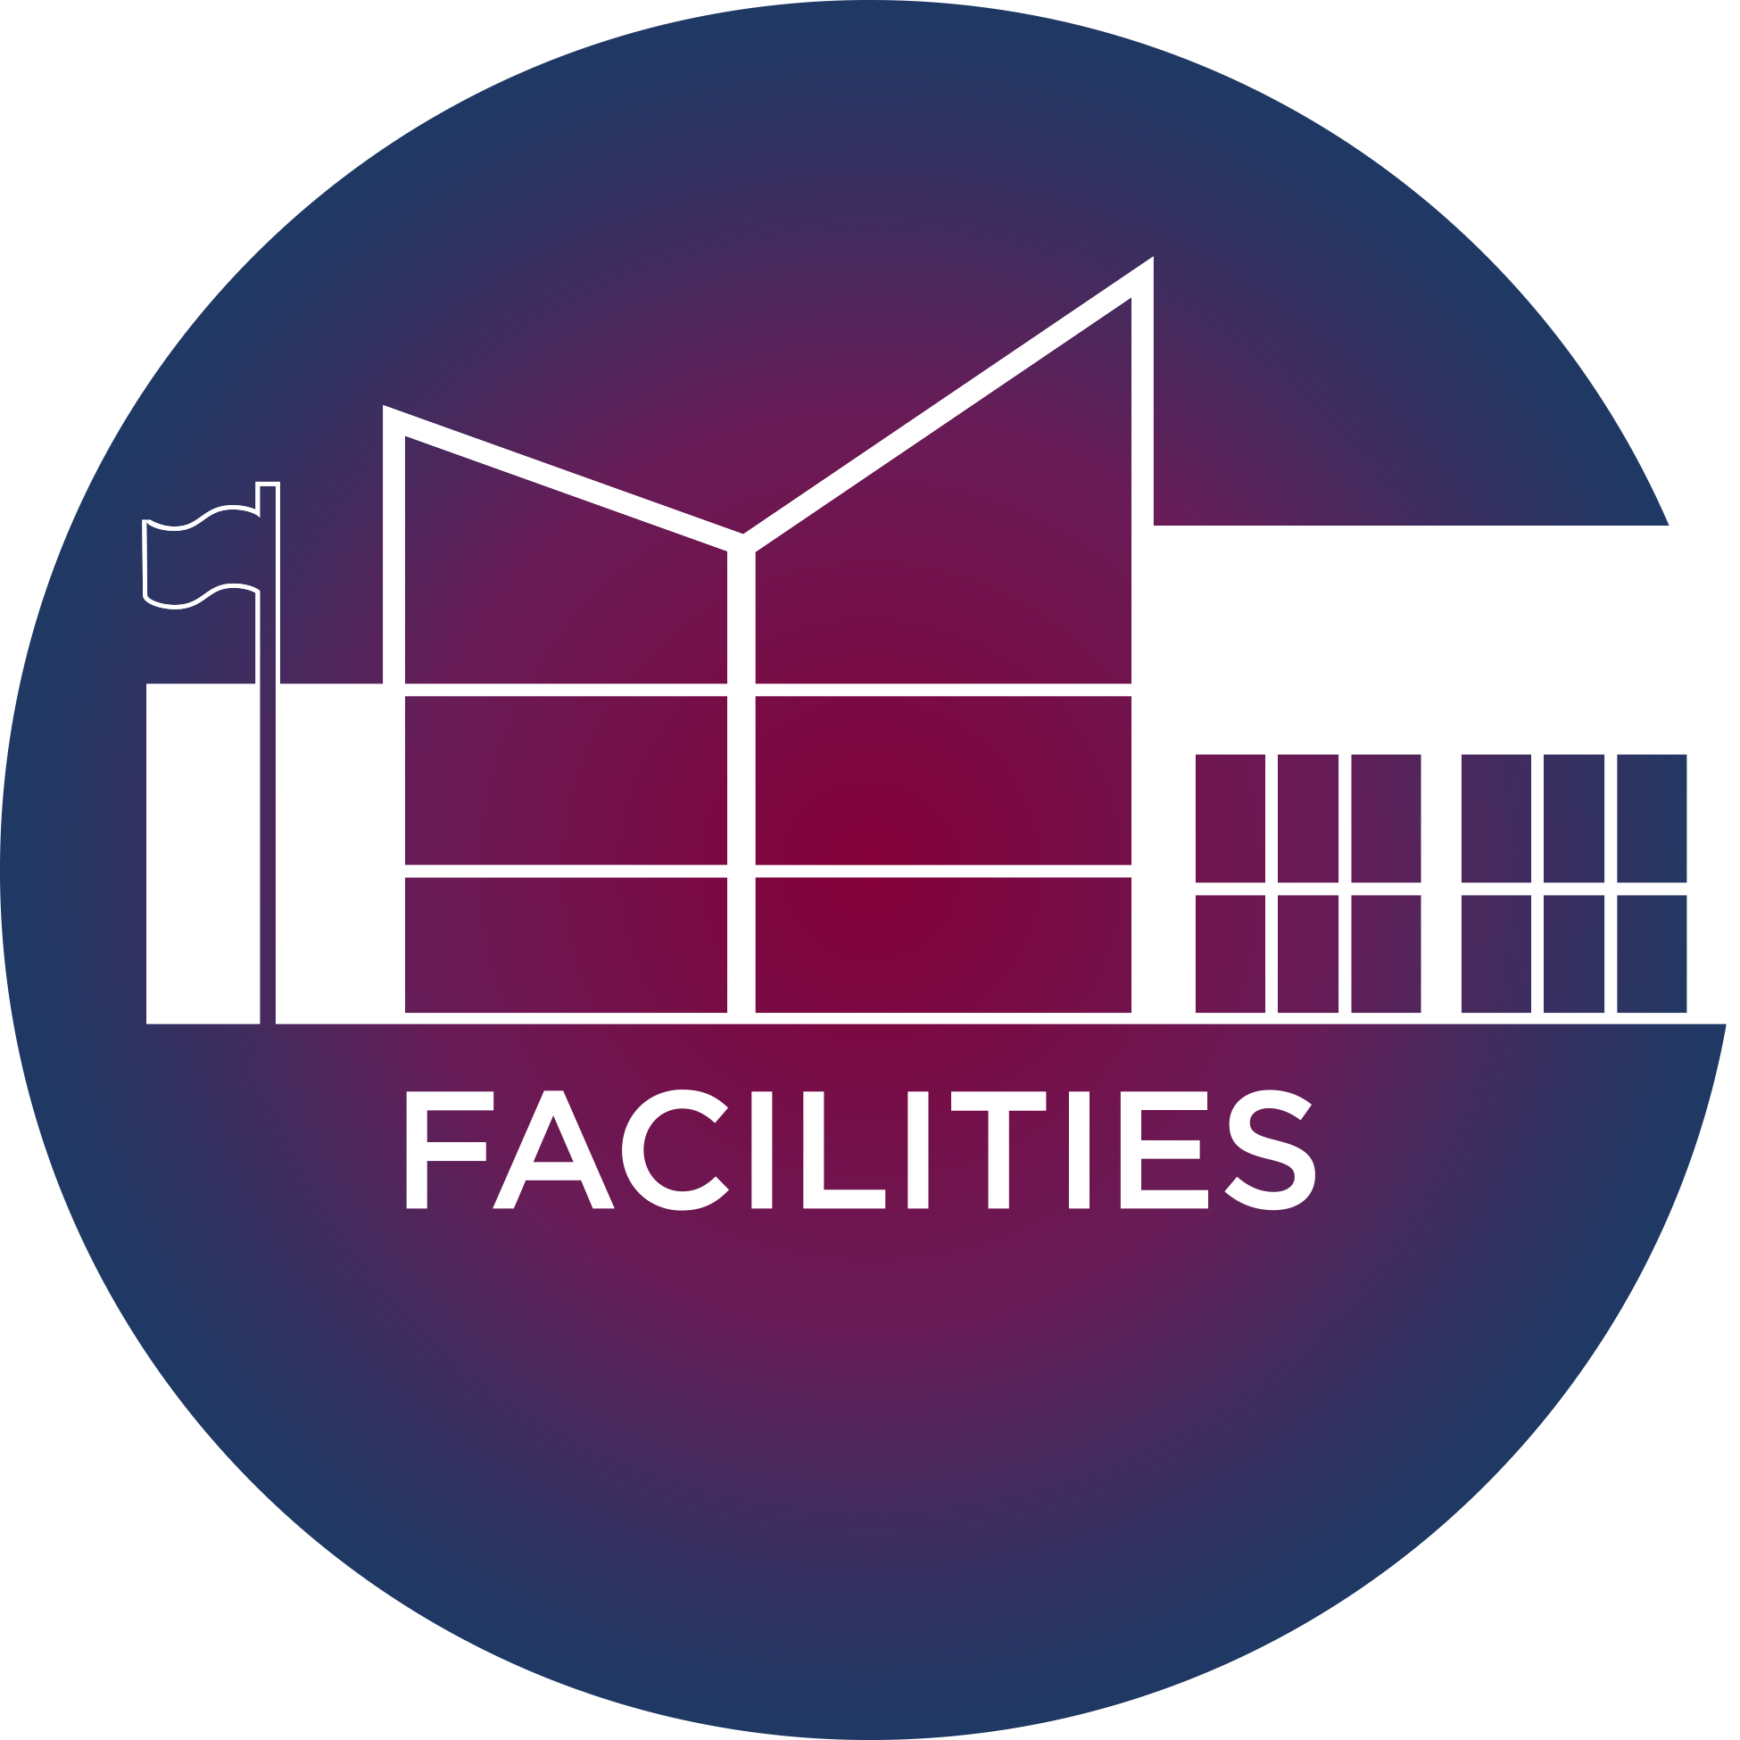 Facilities icon